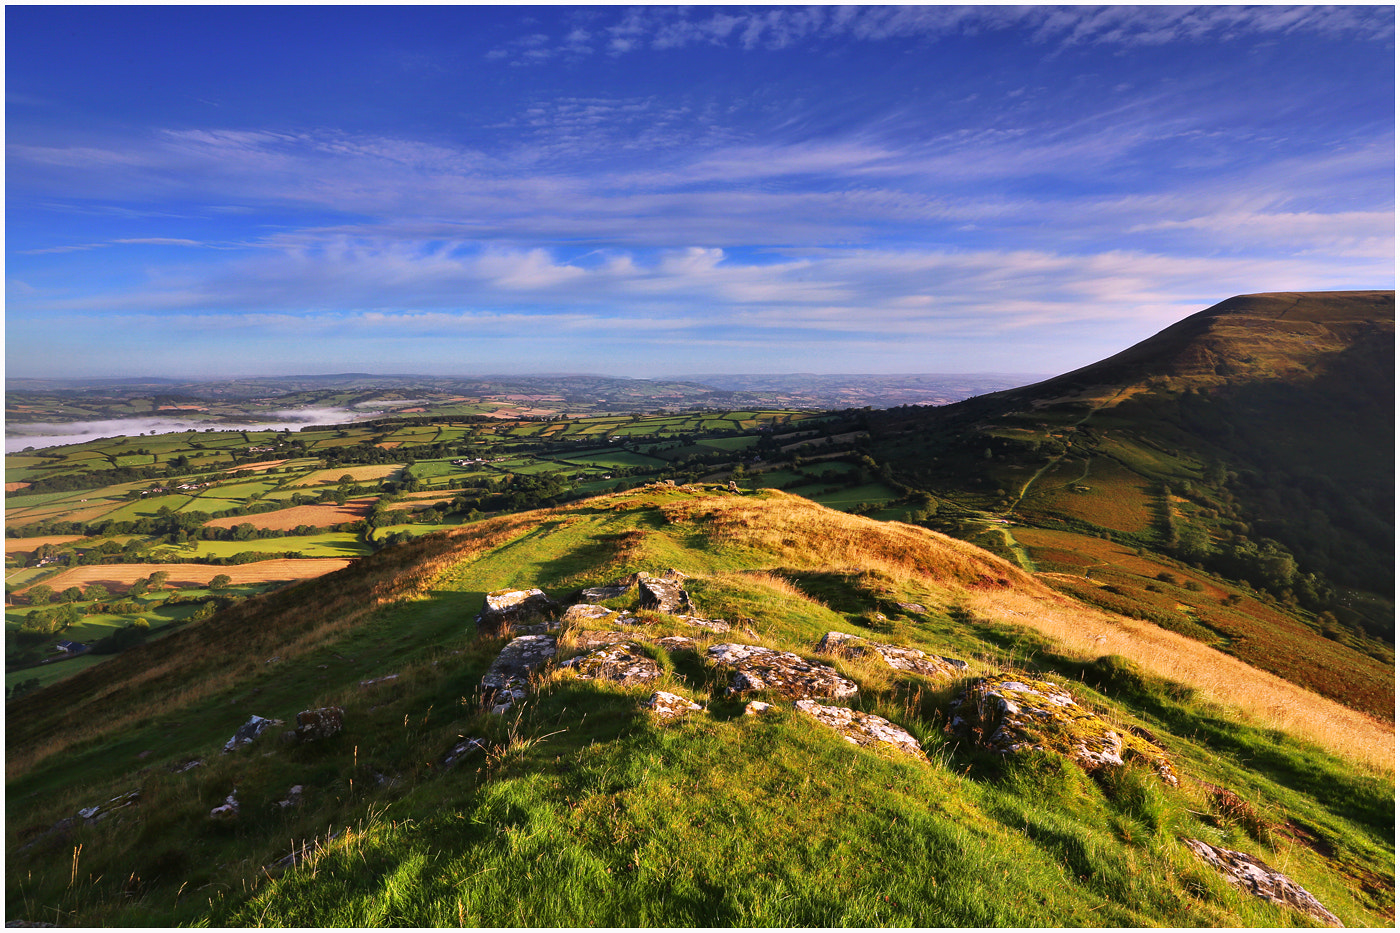 Photograph Cockit Hill by Alan Coles on 500px